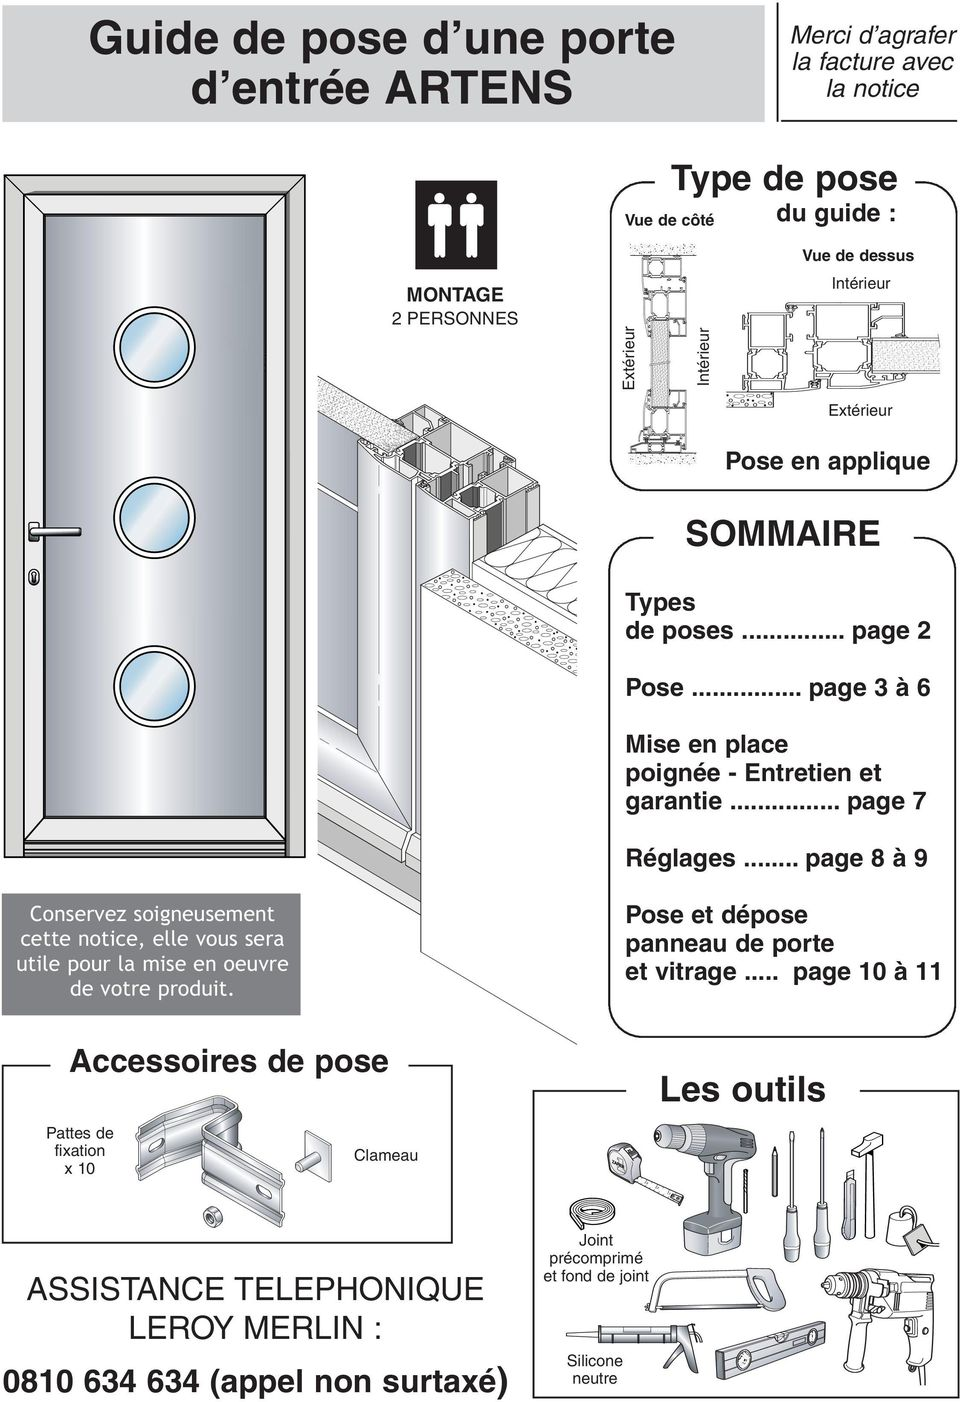 Guide De Pose D Une Porte D Entrée Artens Pdf Free Download